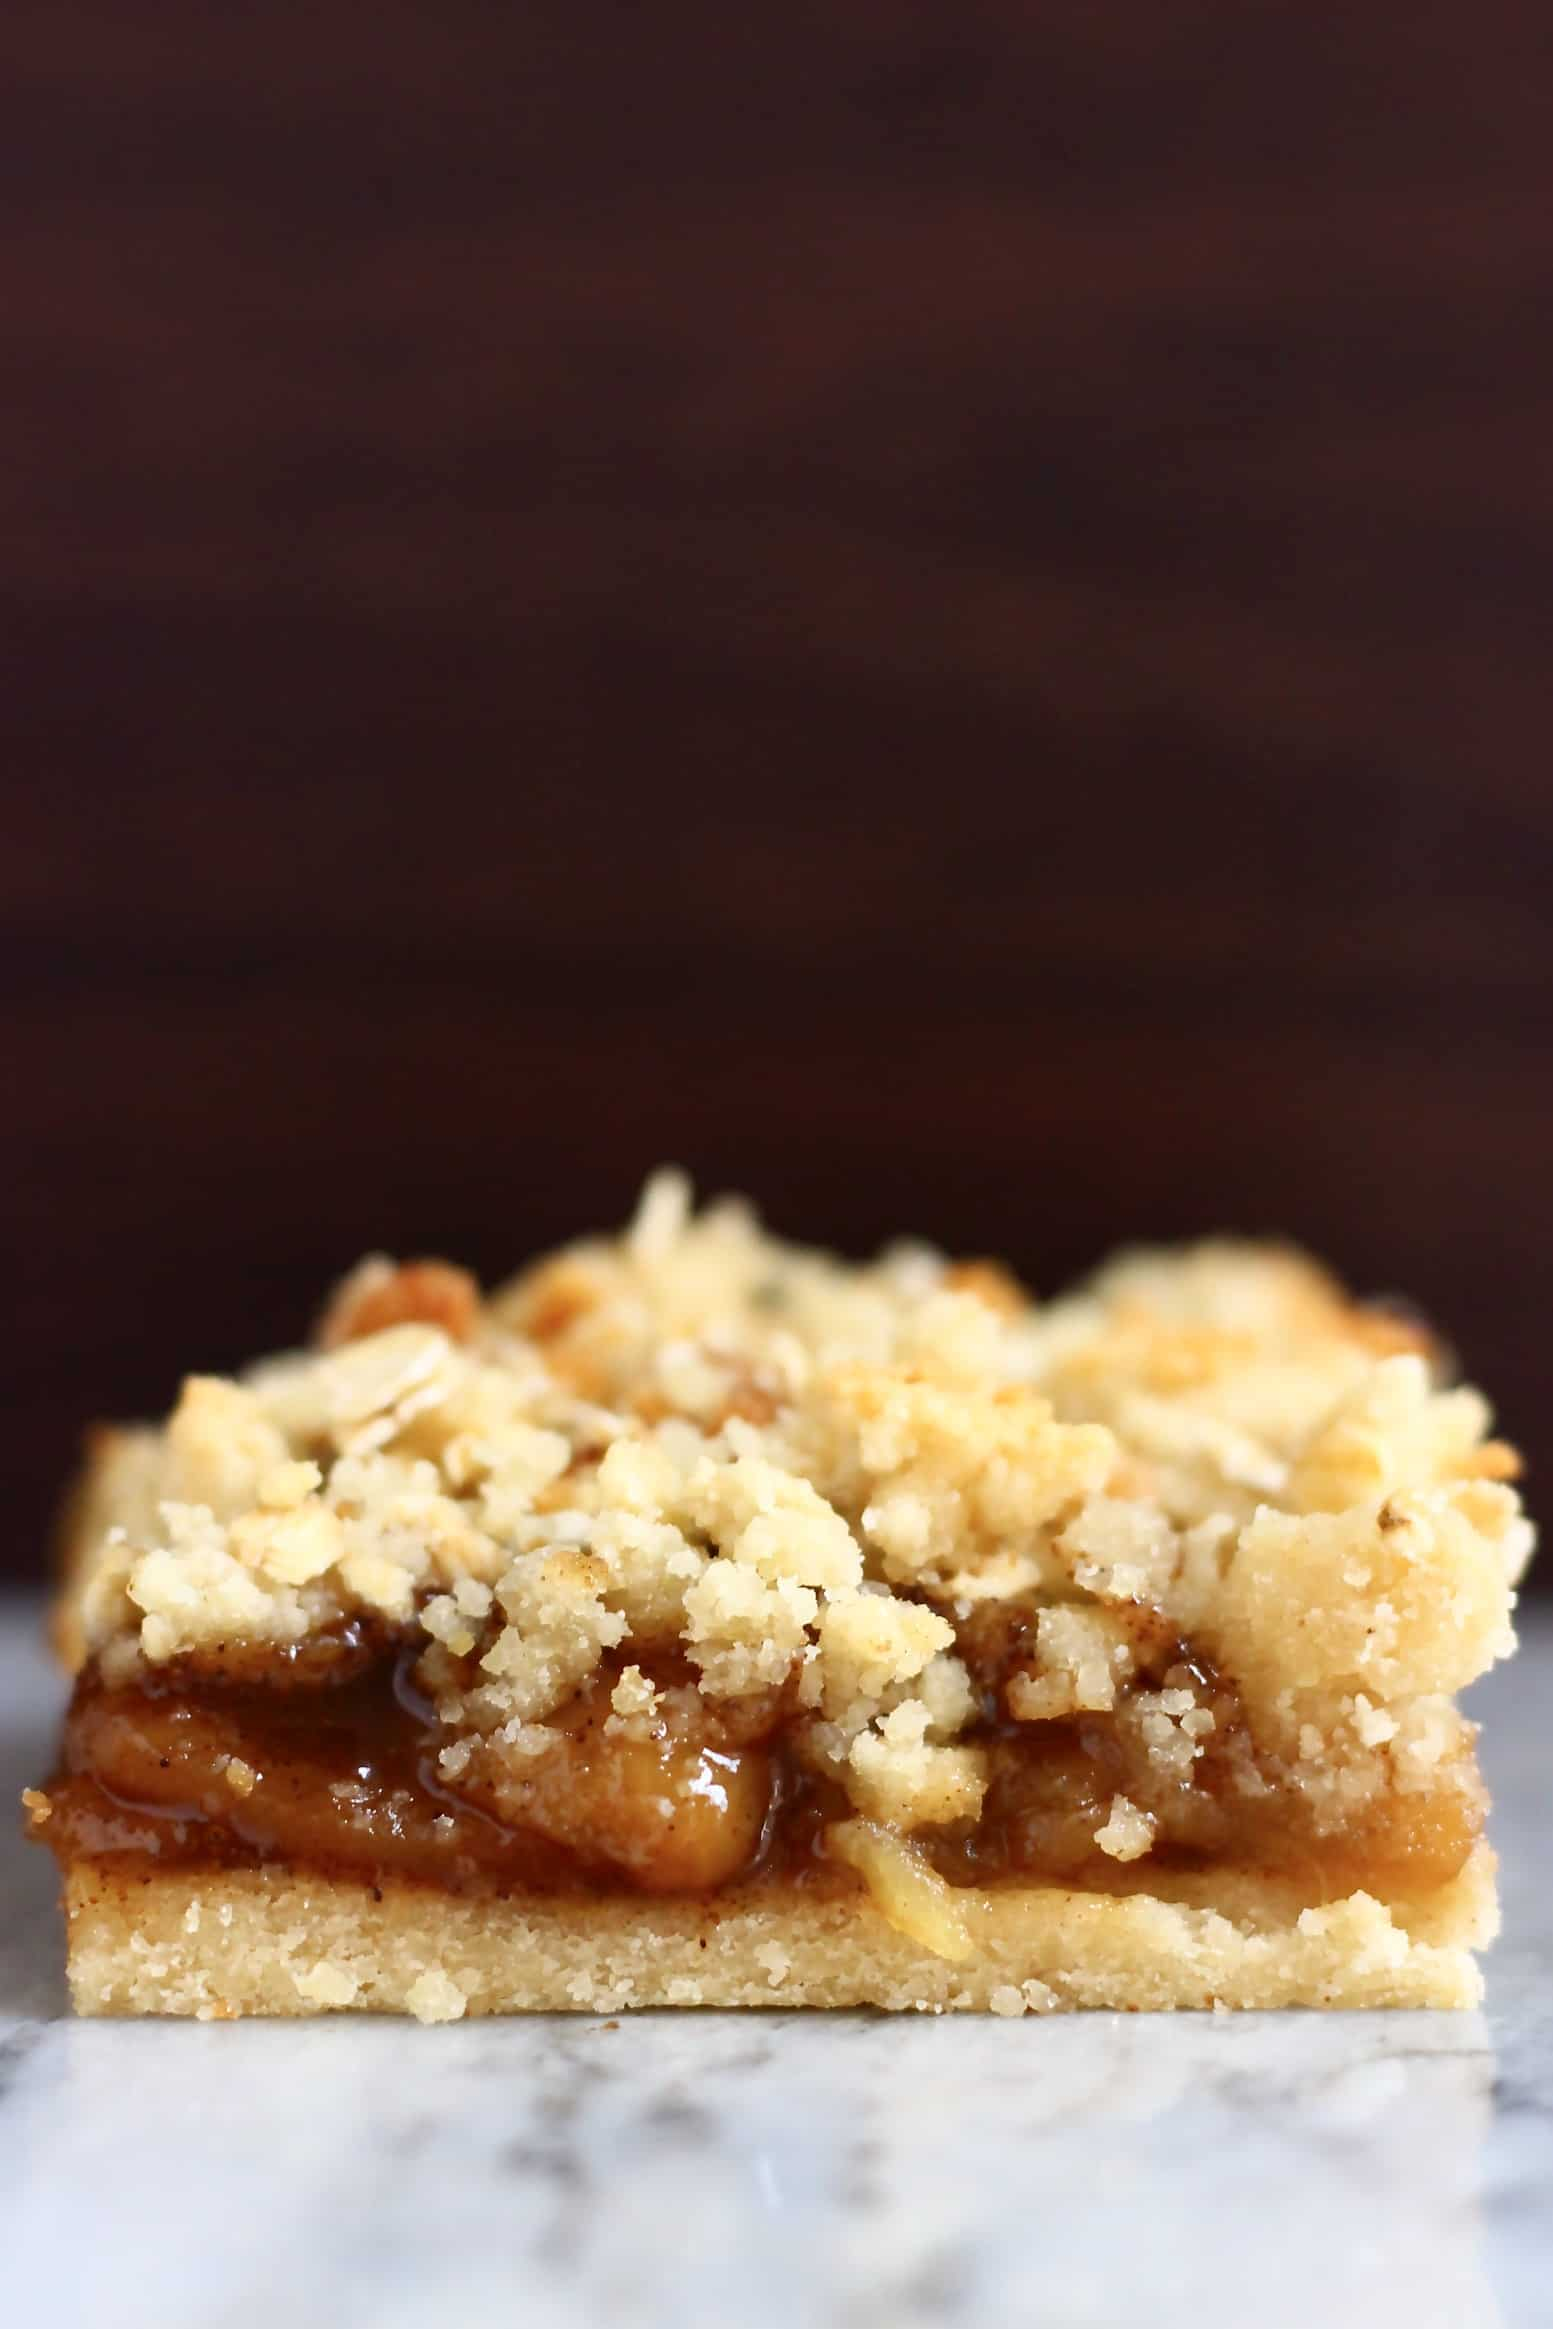 Apple pie bar on a marble slab against a dark brown background